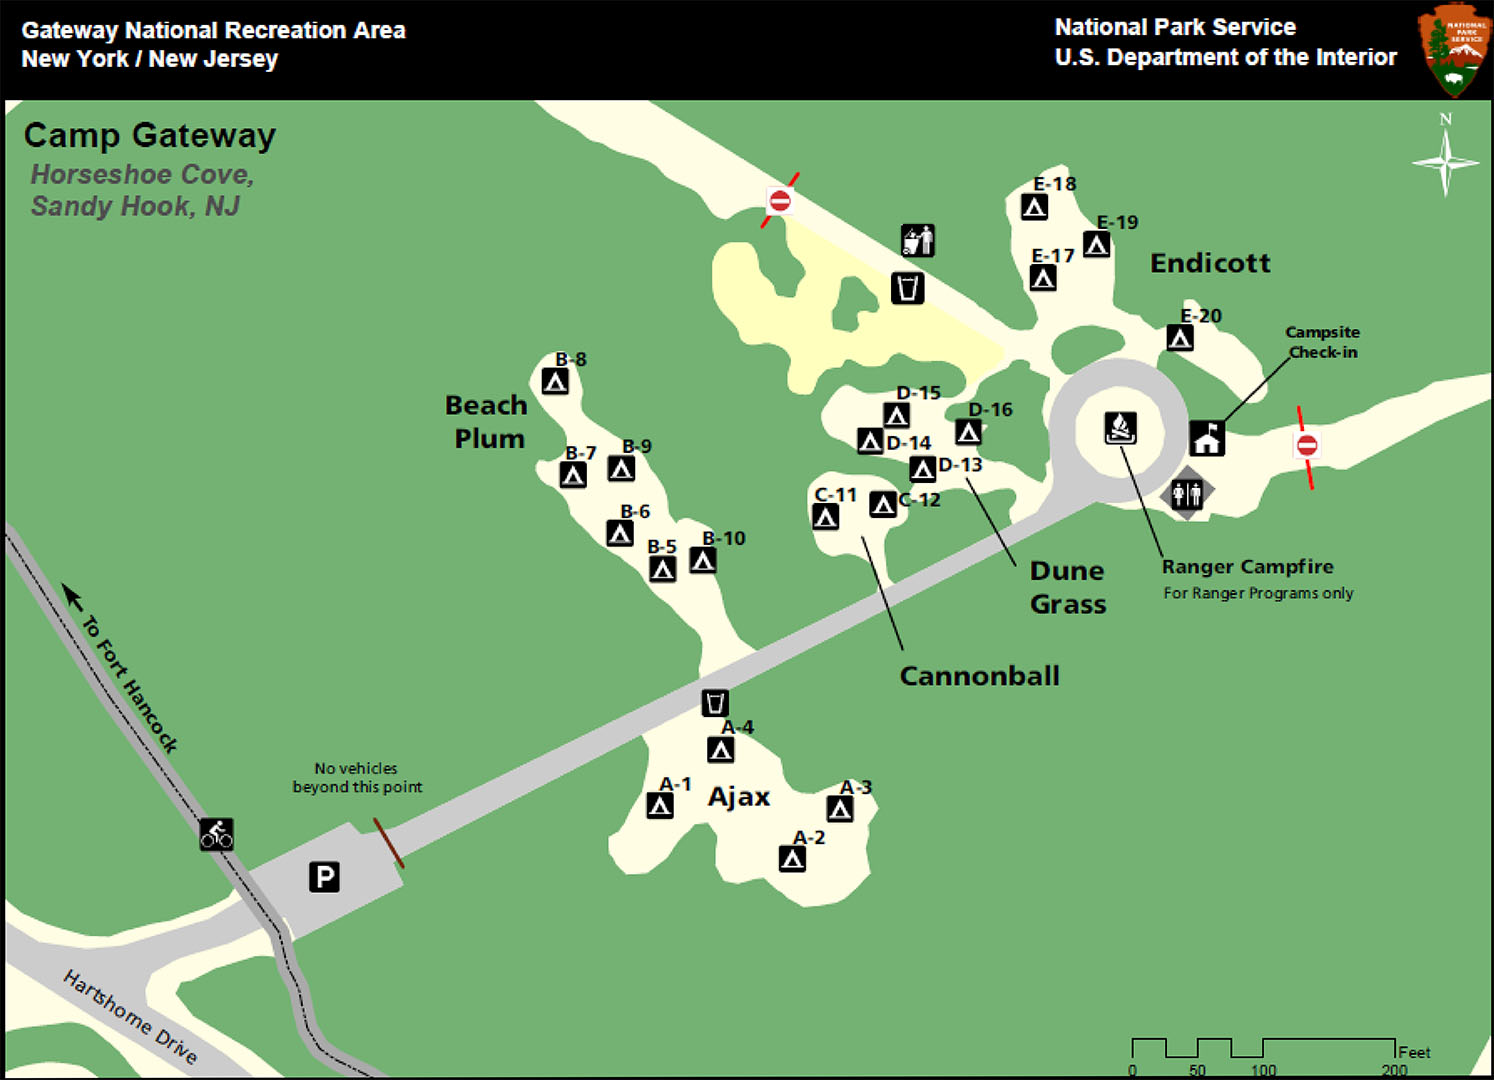 Sandy-Hook-Campground-Map | on newtown conn map, watertown map, fairfield map, avalon map, jacob riis park map, beach haven map, westport map, white plains map, prospect map, cherry hill map, long branch map, newtown connecticut map, albany map, essex map, new castle map, bloomfield college map, milford map, tuckerton seaport map, roxbury map, woodstock map,